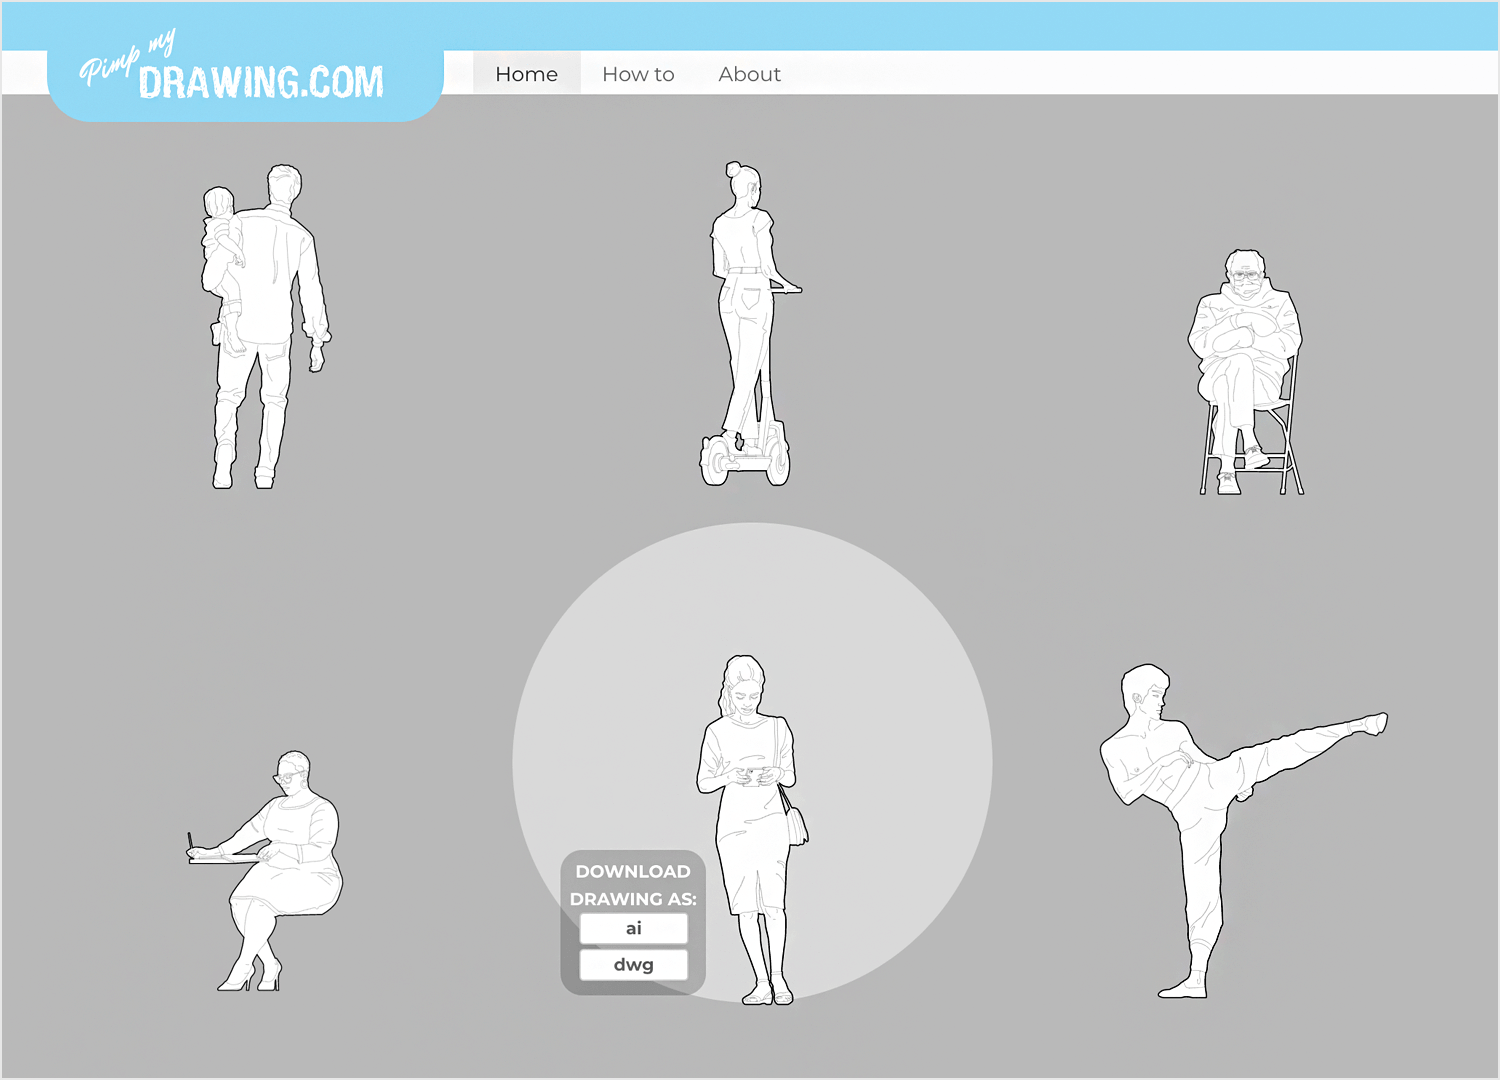 Free vector images - Pimpmydrawing.com homepage